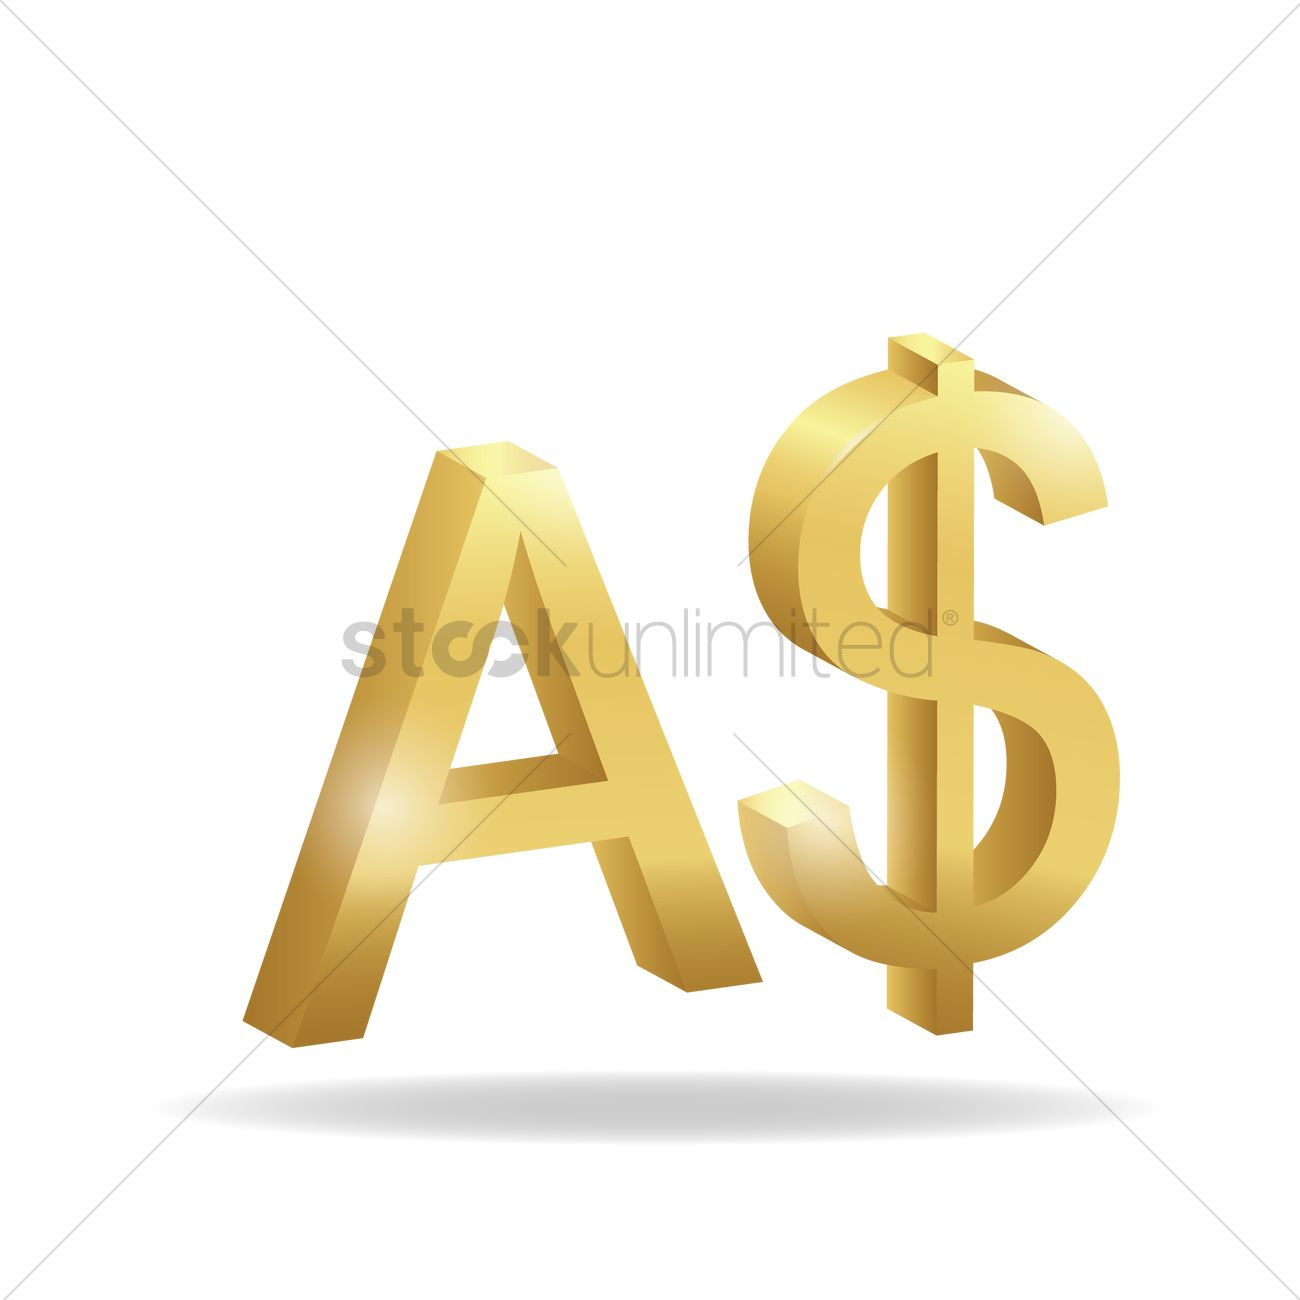 3d australia dollar currency symbol vector image 1827787 3d australia dollar currency symbol vector graphic biocorpaavc Images